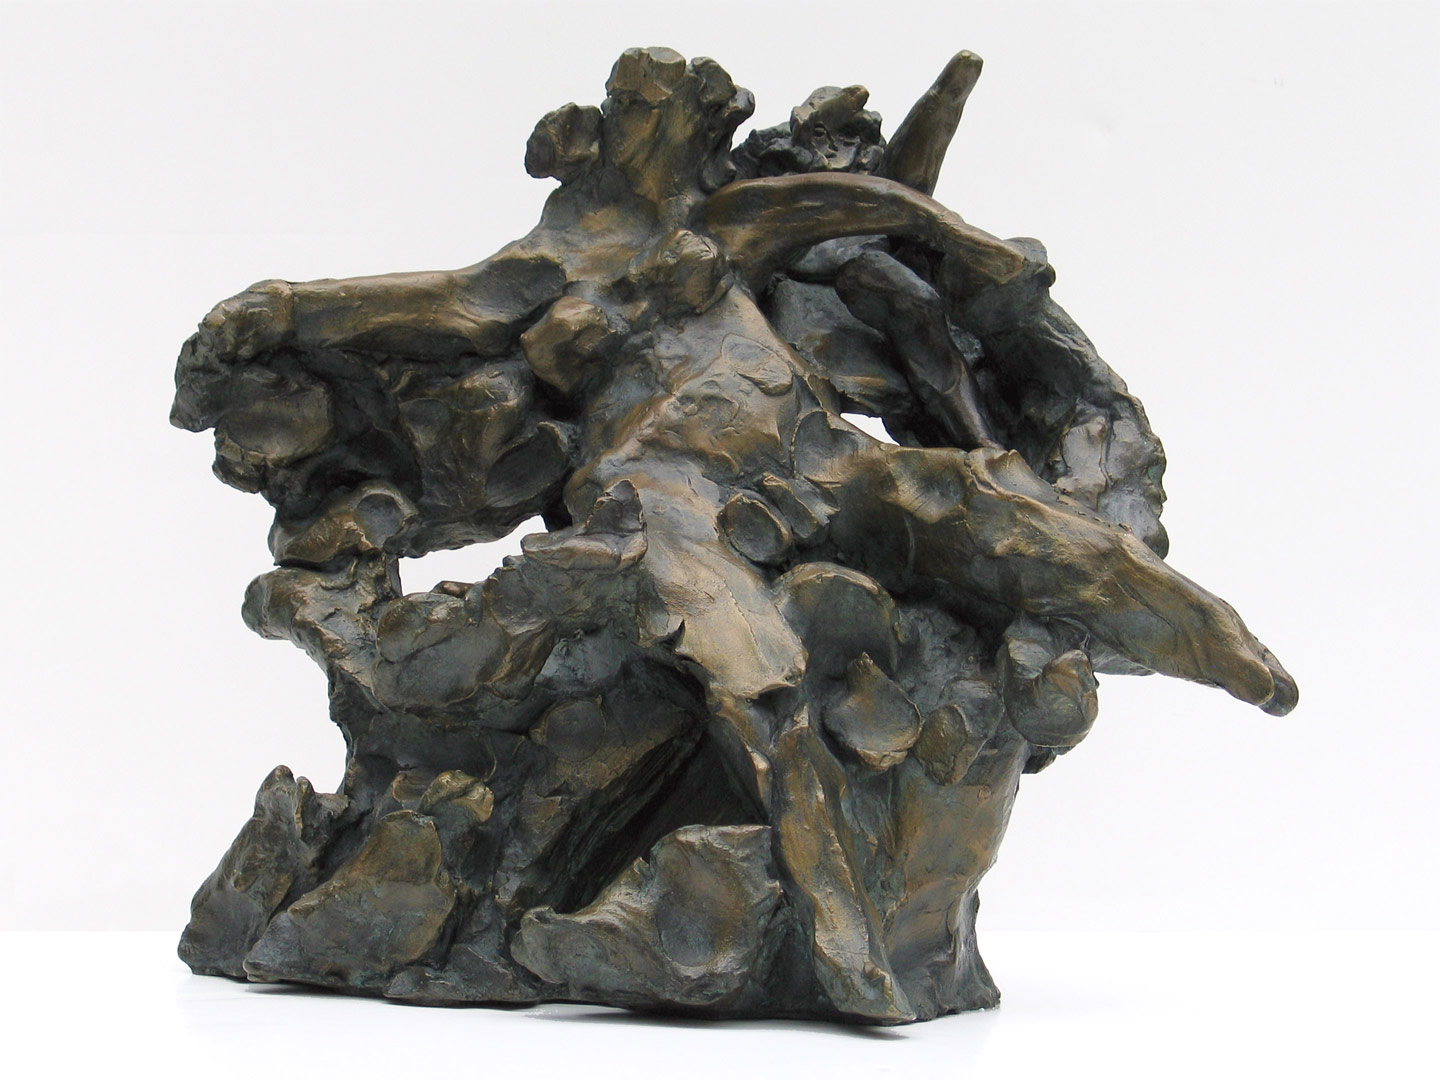 "Voyage to Crete  1962-65, bronze 12 ½ x 14 x 9"" Stamford Museum and Nature Center, Stamford, CT; private collections 30.085"